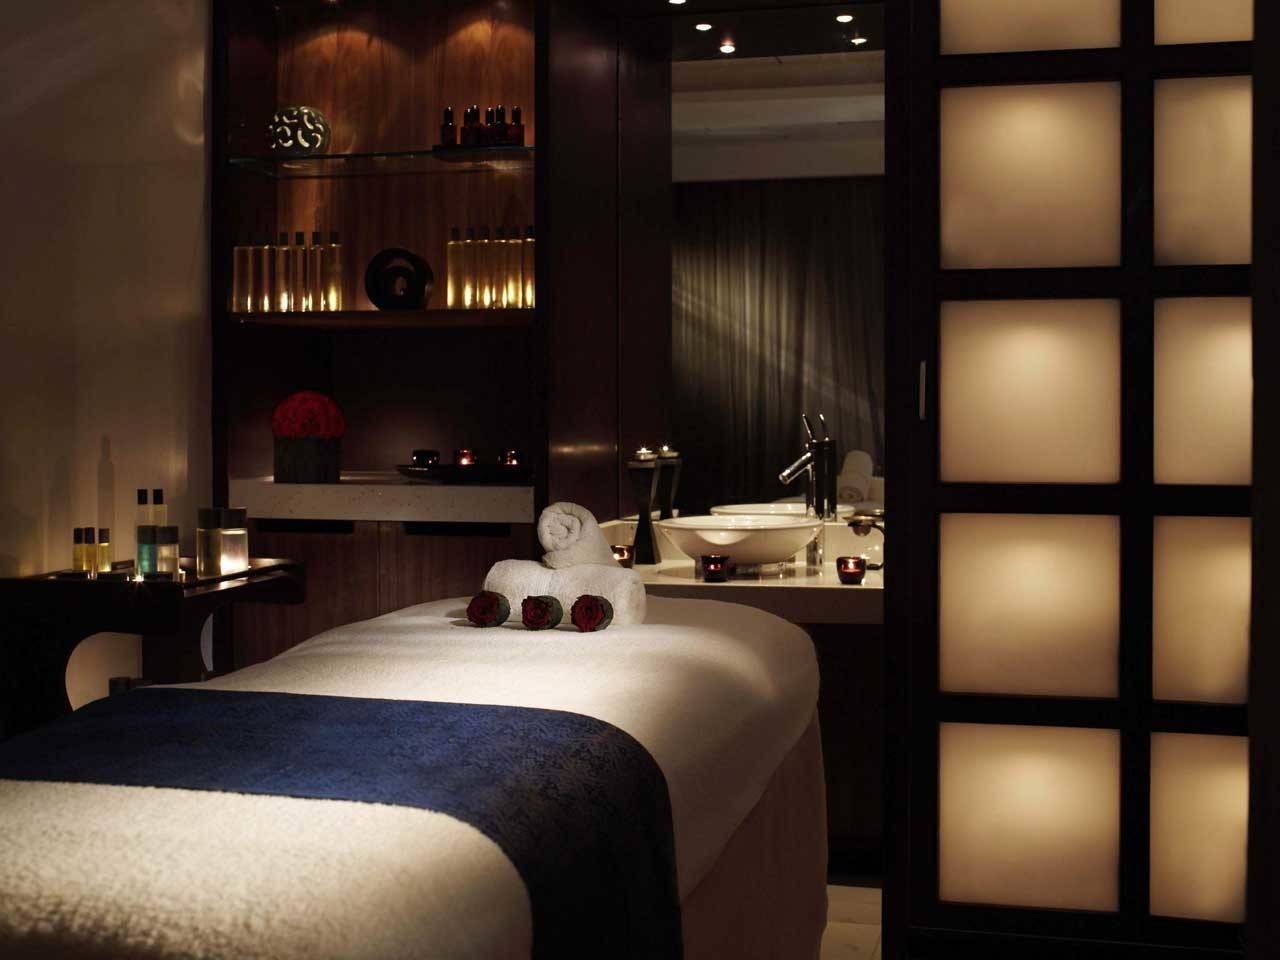 Day Spa Room